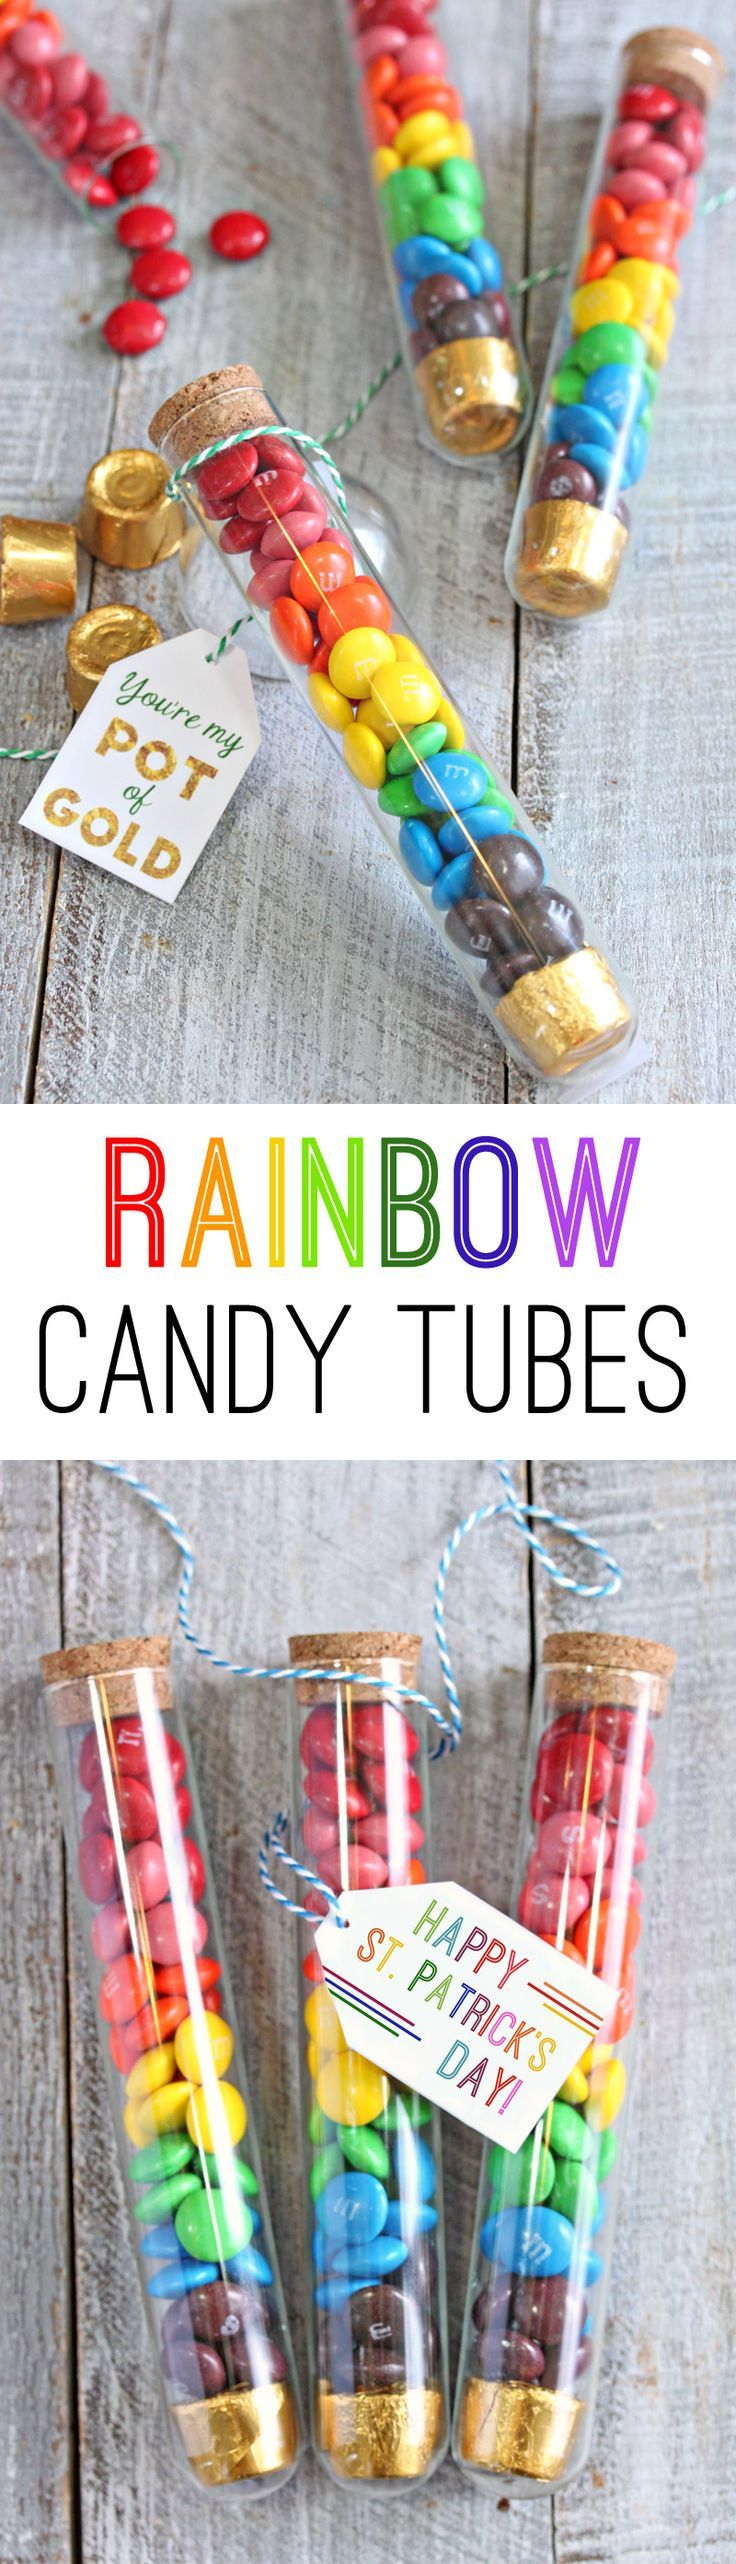 Rainbow Candy Tubes are an easy St. Patrick's Day gift idea. Get these two printable gift tags for free and make them this year! | From http://candy.about.com